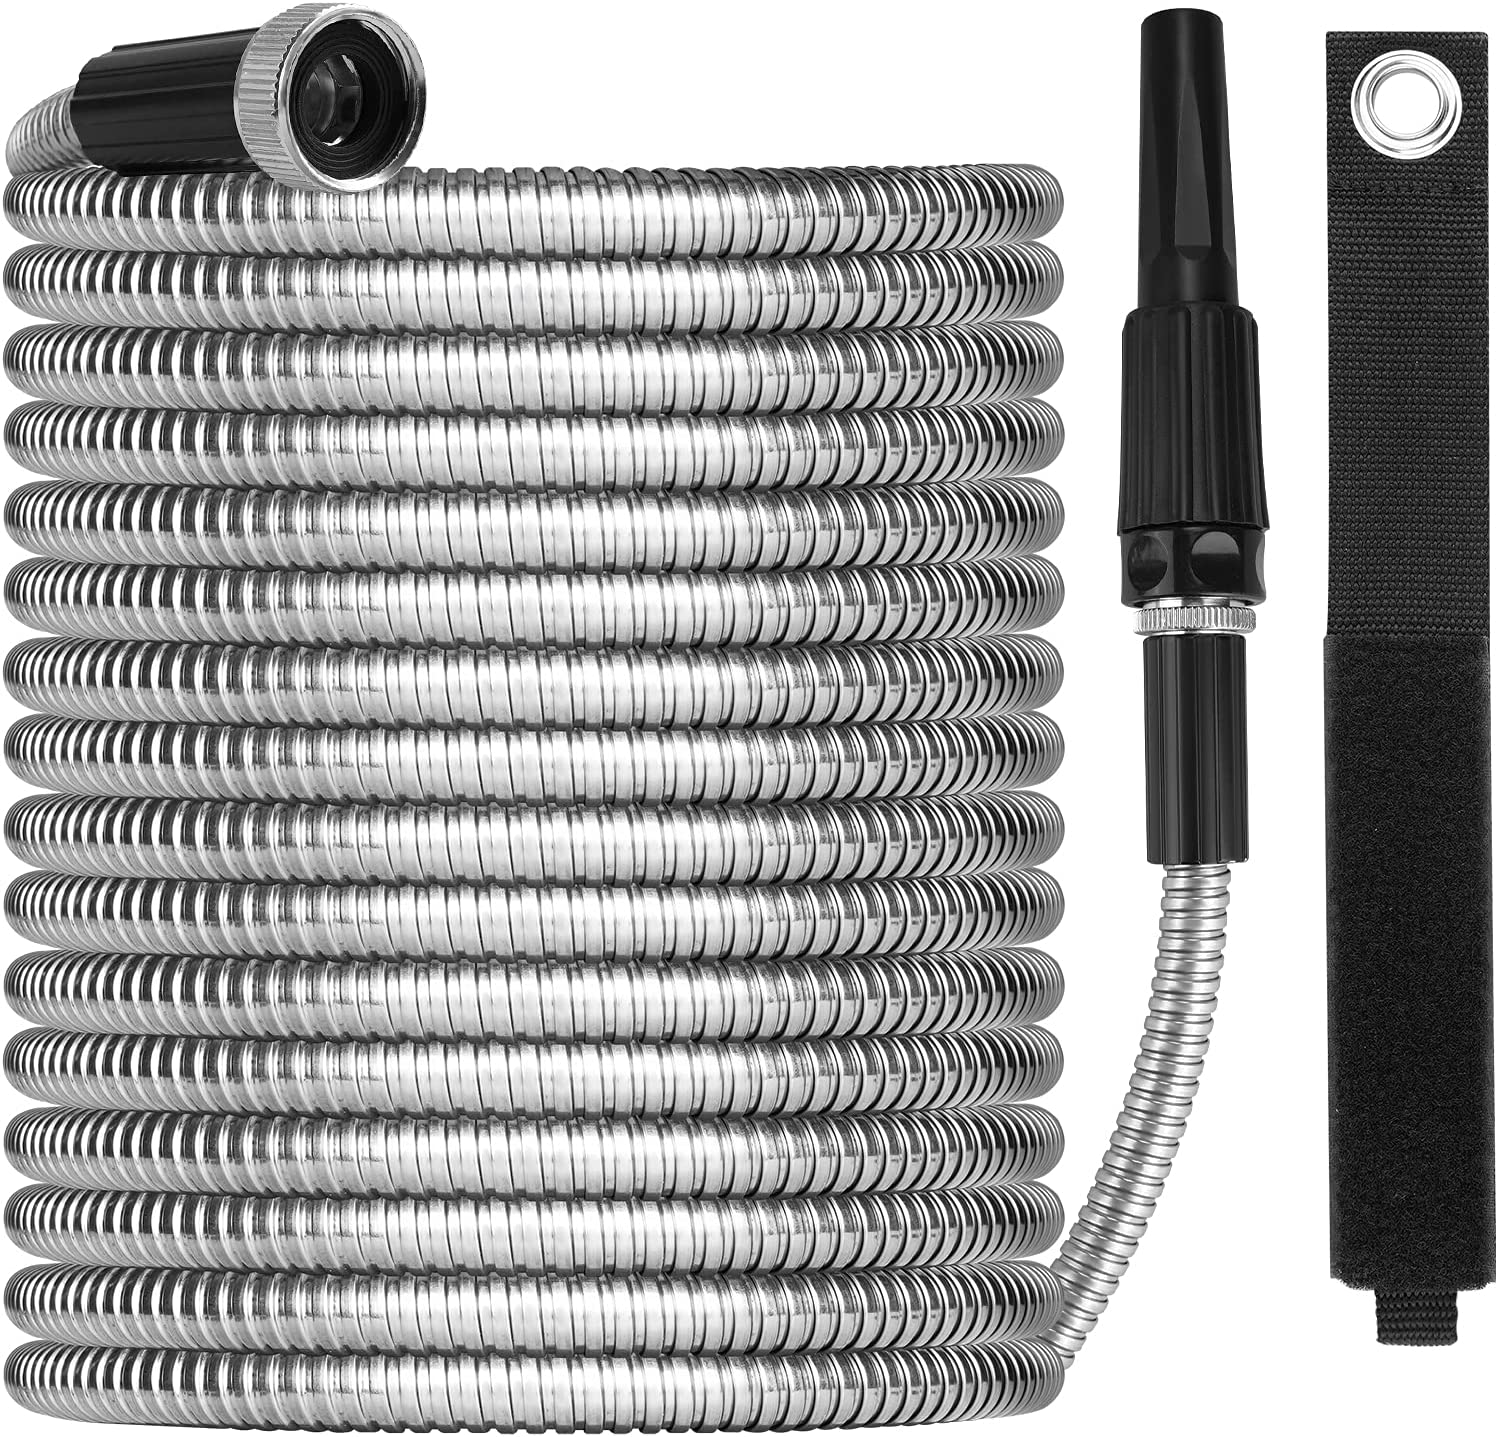 Metal Garden Hose 100ft with Super Tough and Soft Water Hose, Household Stainless Steel Hose, Durable Metal Garden Hose with Adjustable Nozzle, No Kinks and Tangles, Easy to Store with Storage Strap